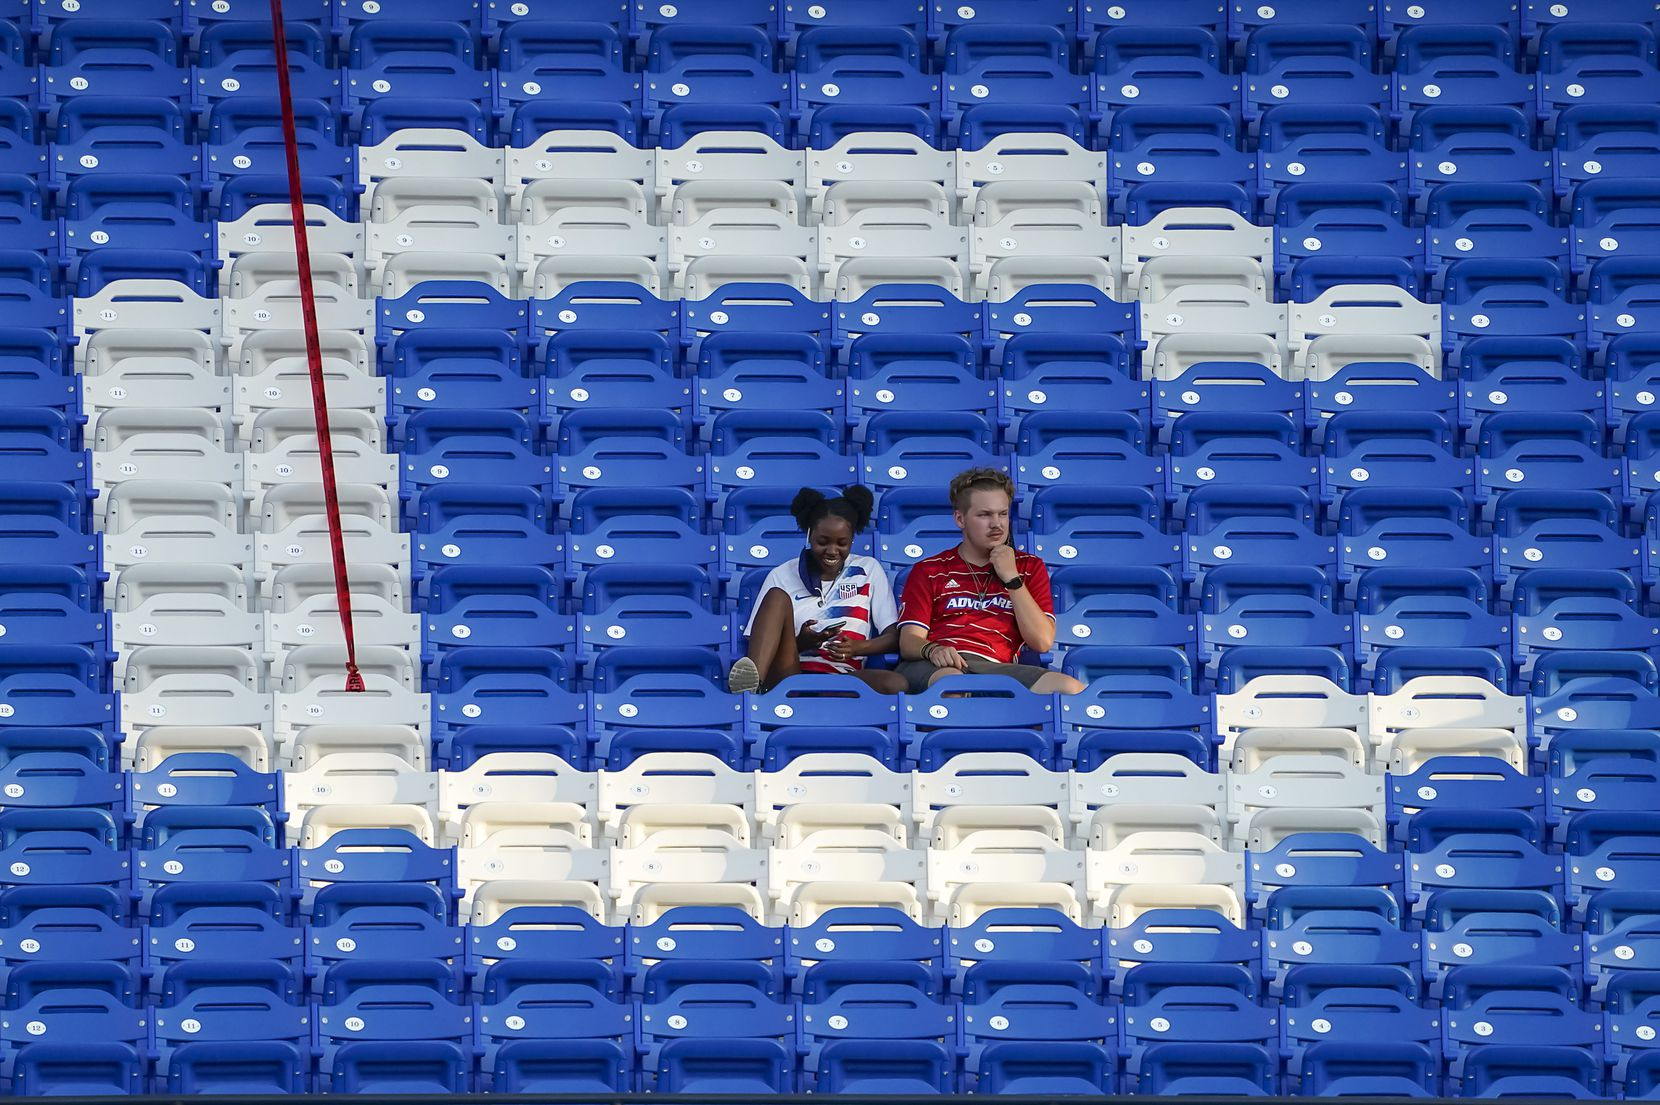 Fans sit in the middle of the ÔCÕ in FC Dallas during the first half of an MLS soccer game against Nashville SC at Toyota Stadium on Wednesday, Aug. 12, 2020, in Frisco, Texas. (Smiley N. Pool/The Dallas Morning News)